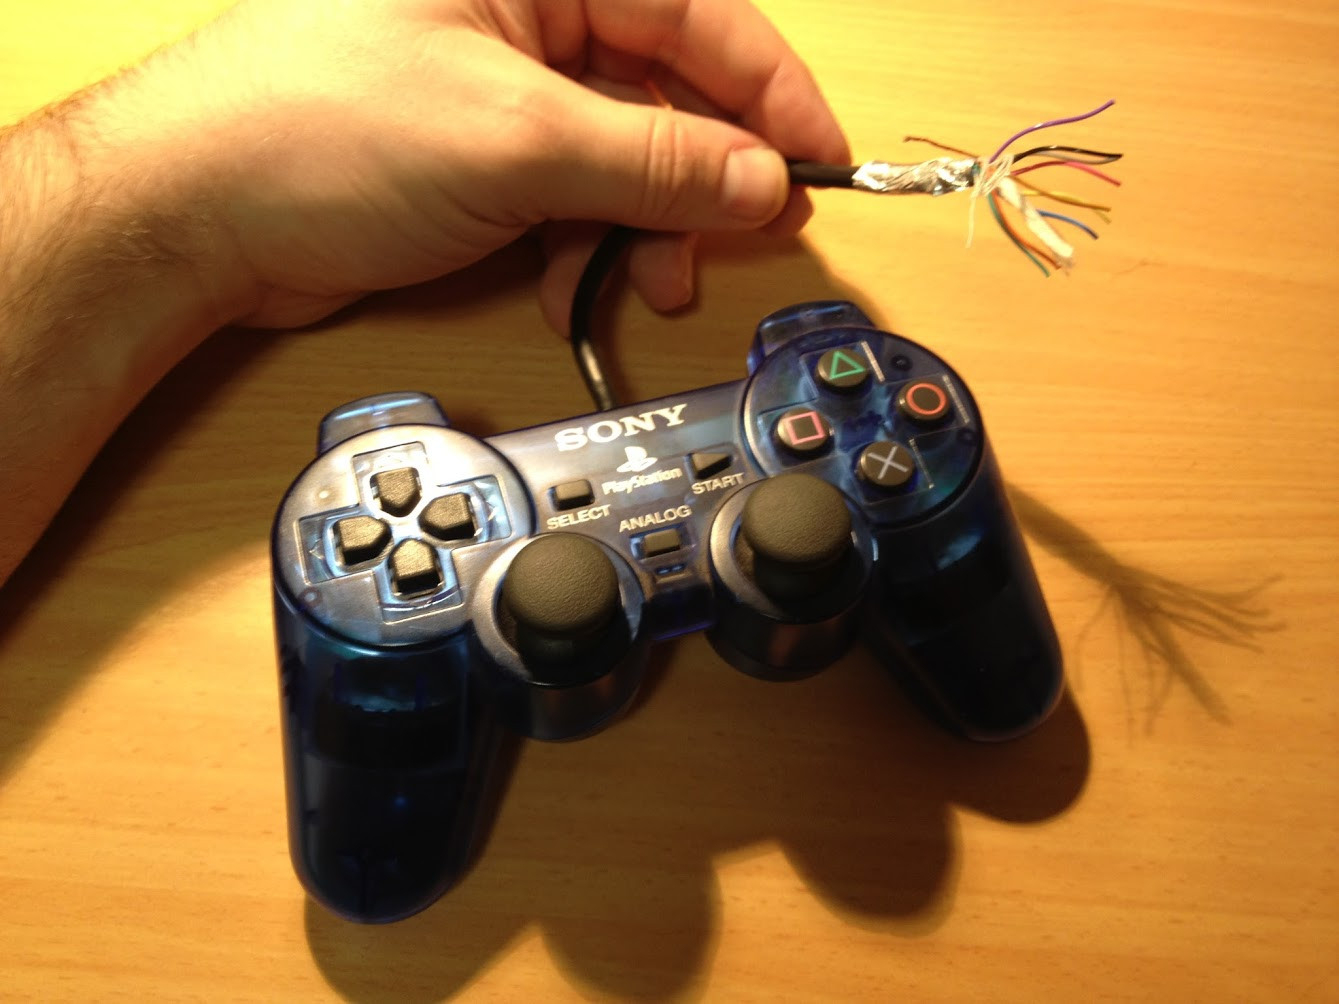 Wiring Diagram Usb Ps2 | Wiring Library - Usb To Ps2 Wiring Diagram